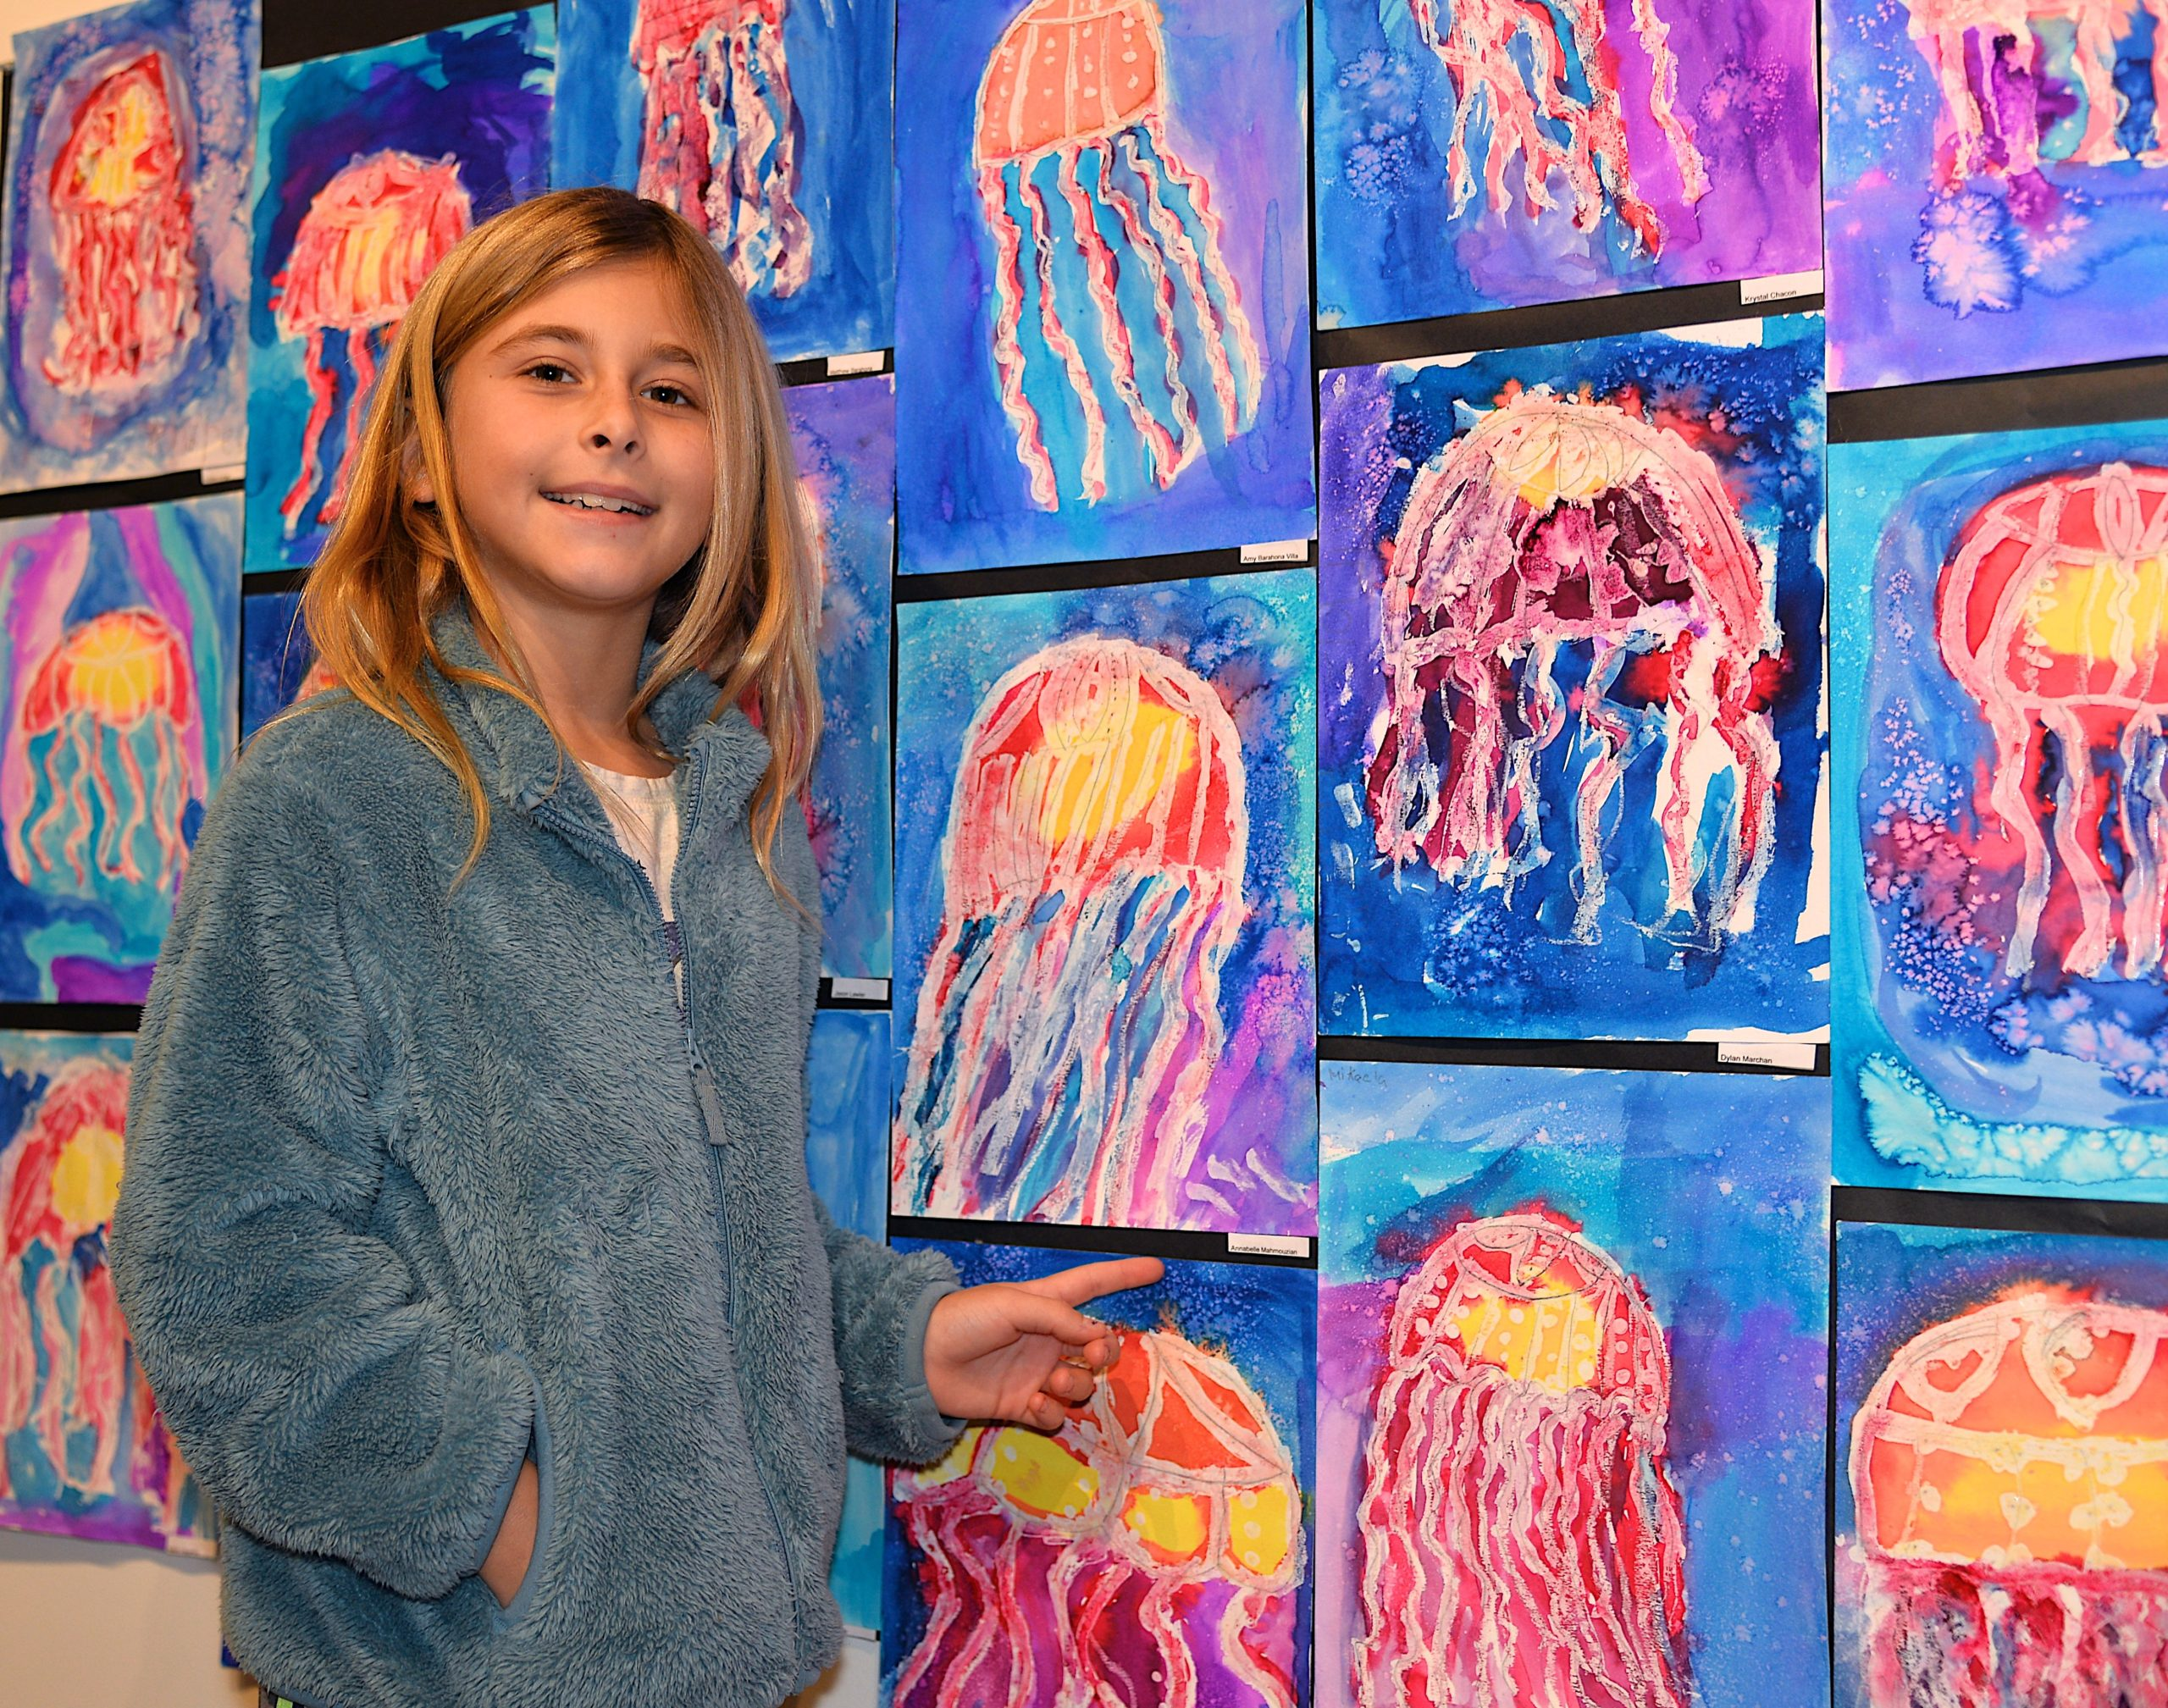 The Student Arts Festival opened at Guild Hall on Saturday with a reception. John Marshall Elementary School second-grader Annabelle Mahmouzian points to her work. KYRIL BROMLEY